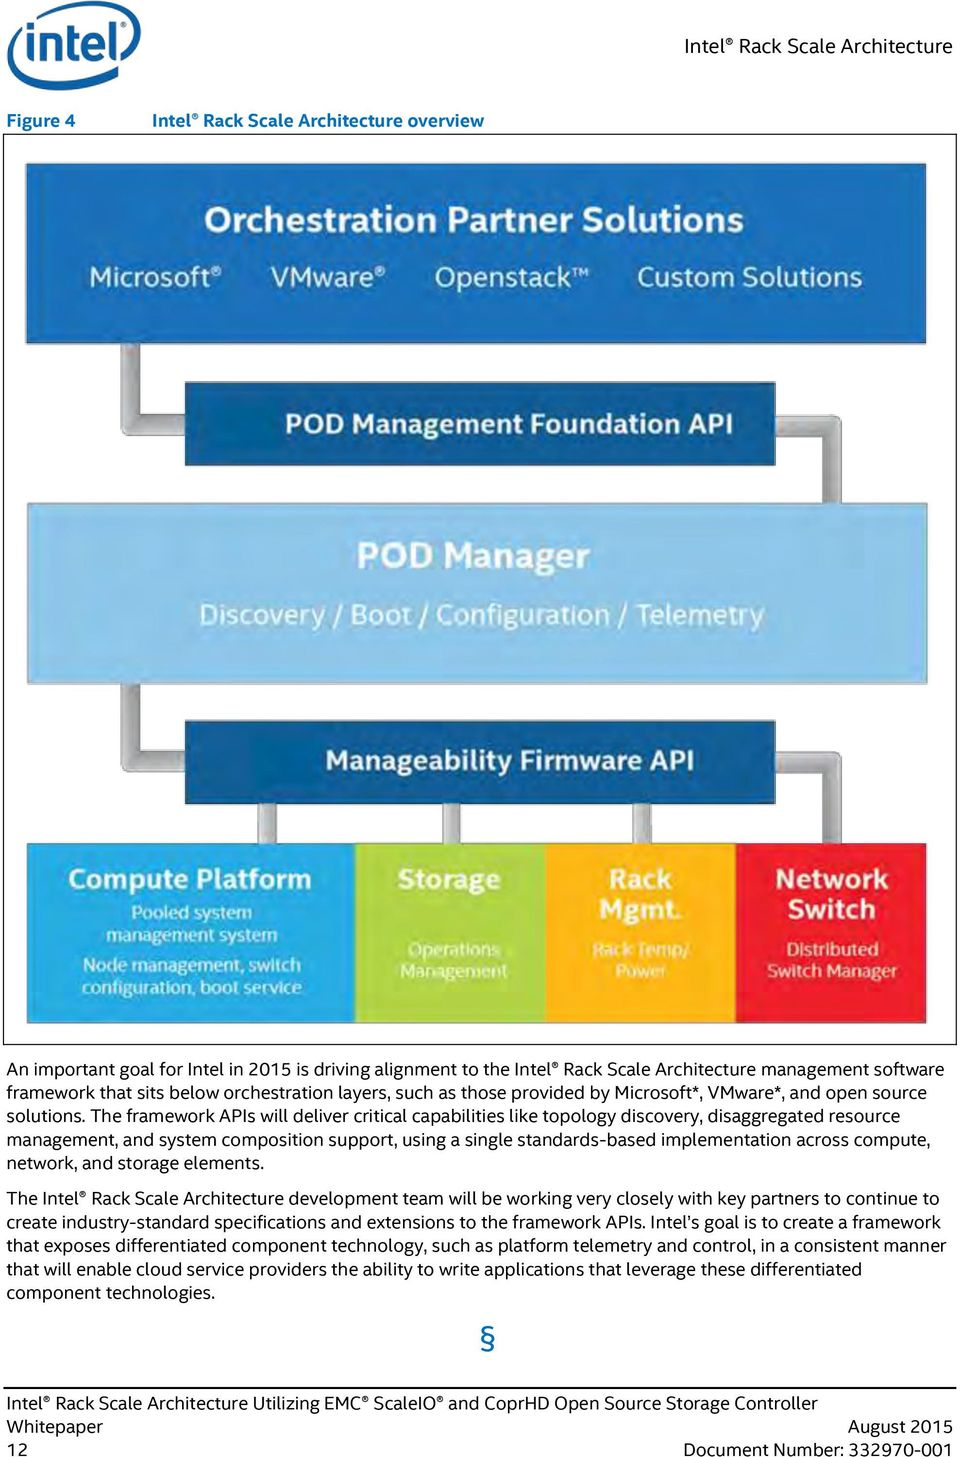 The framework APIs will deliver critical capabilities like topology discovery, disaggregated resource management, and system composition support, using a single standards-based implementation across